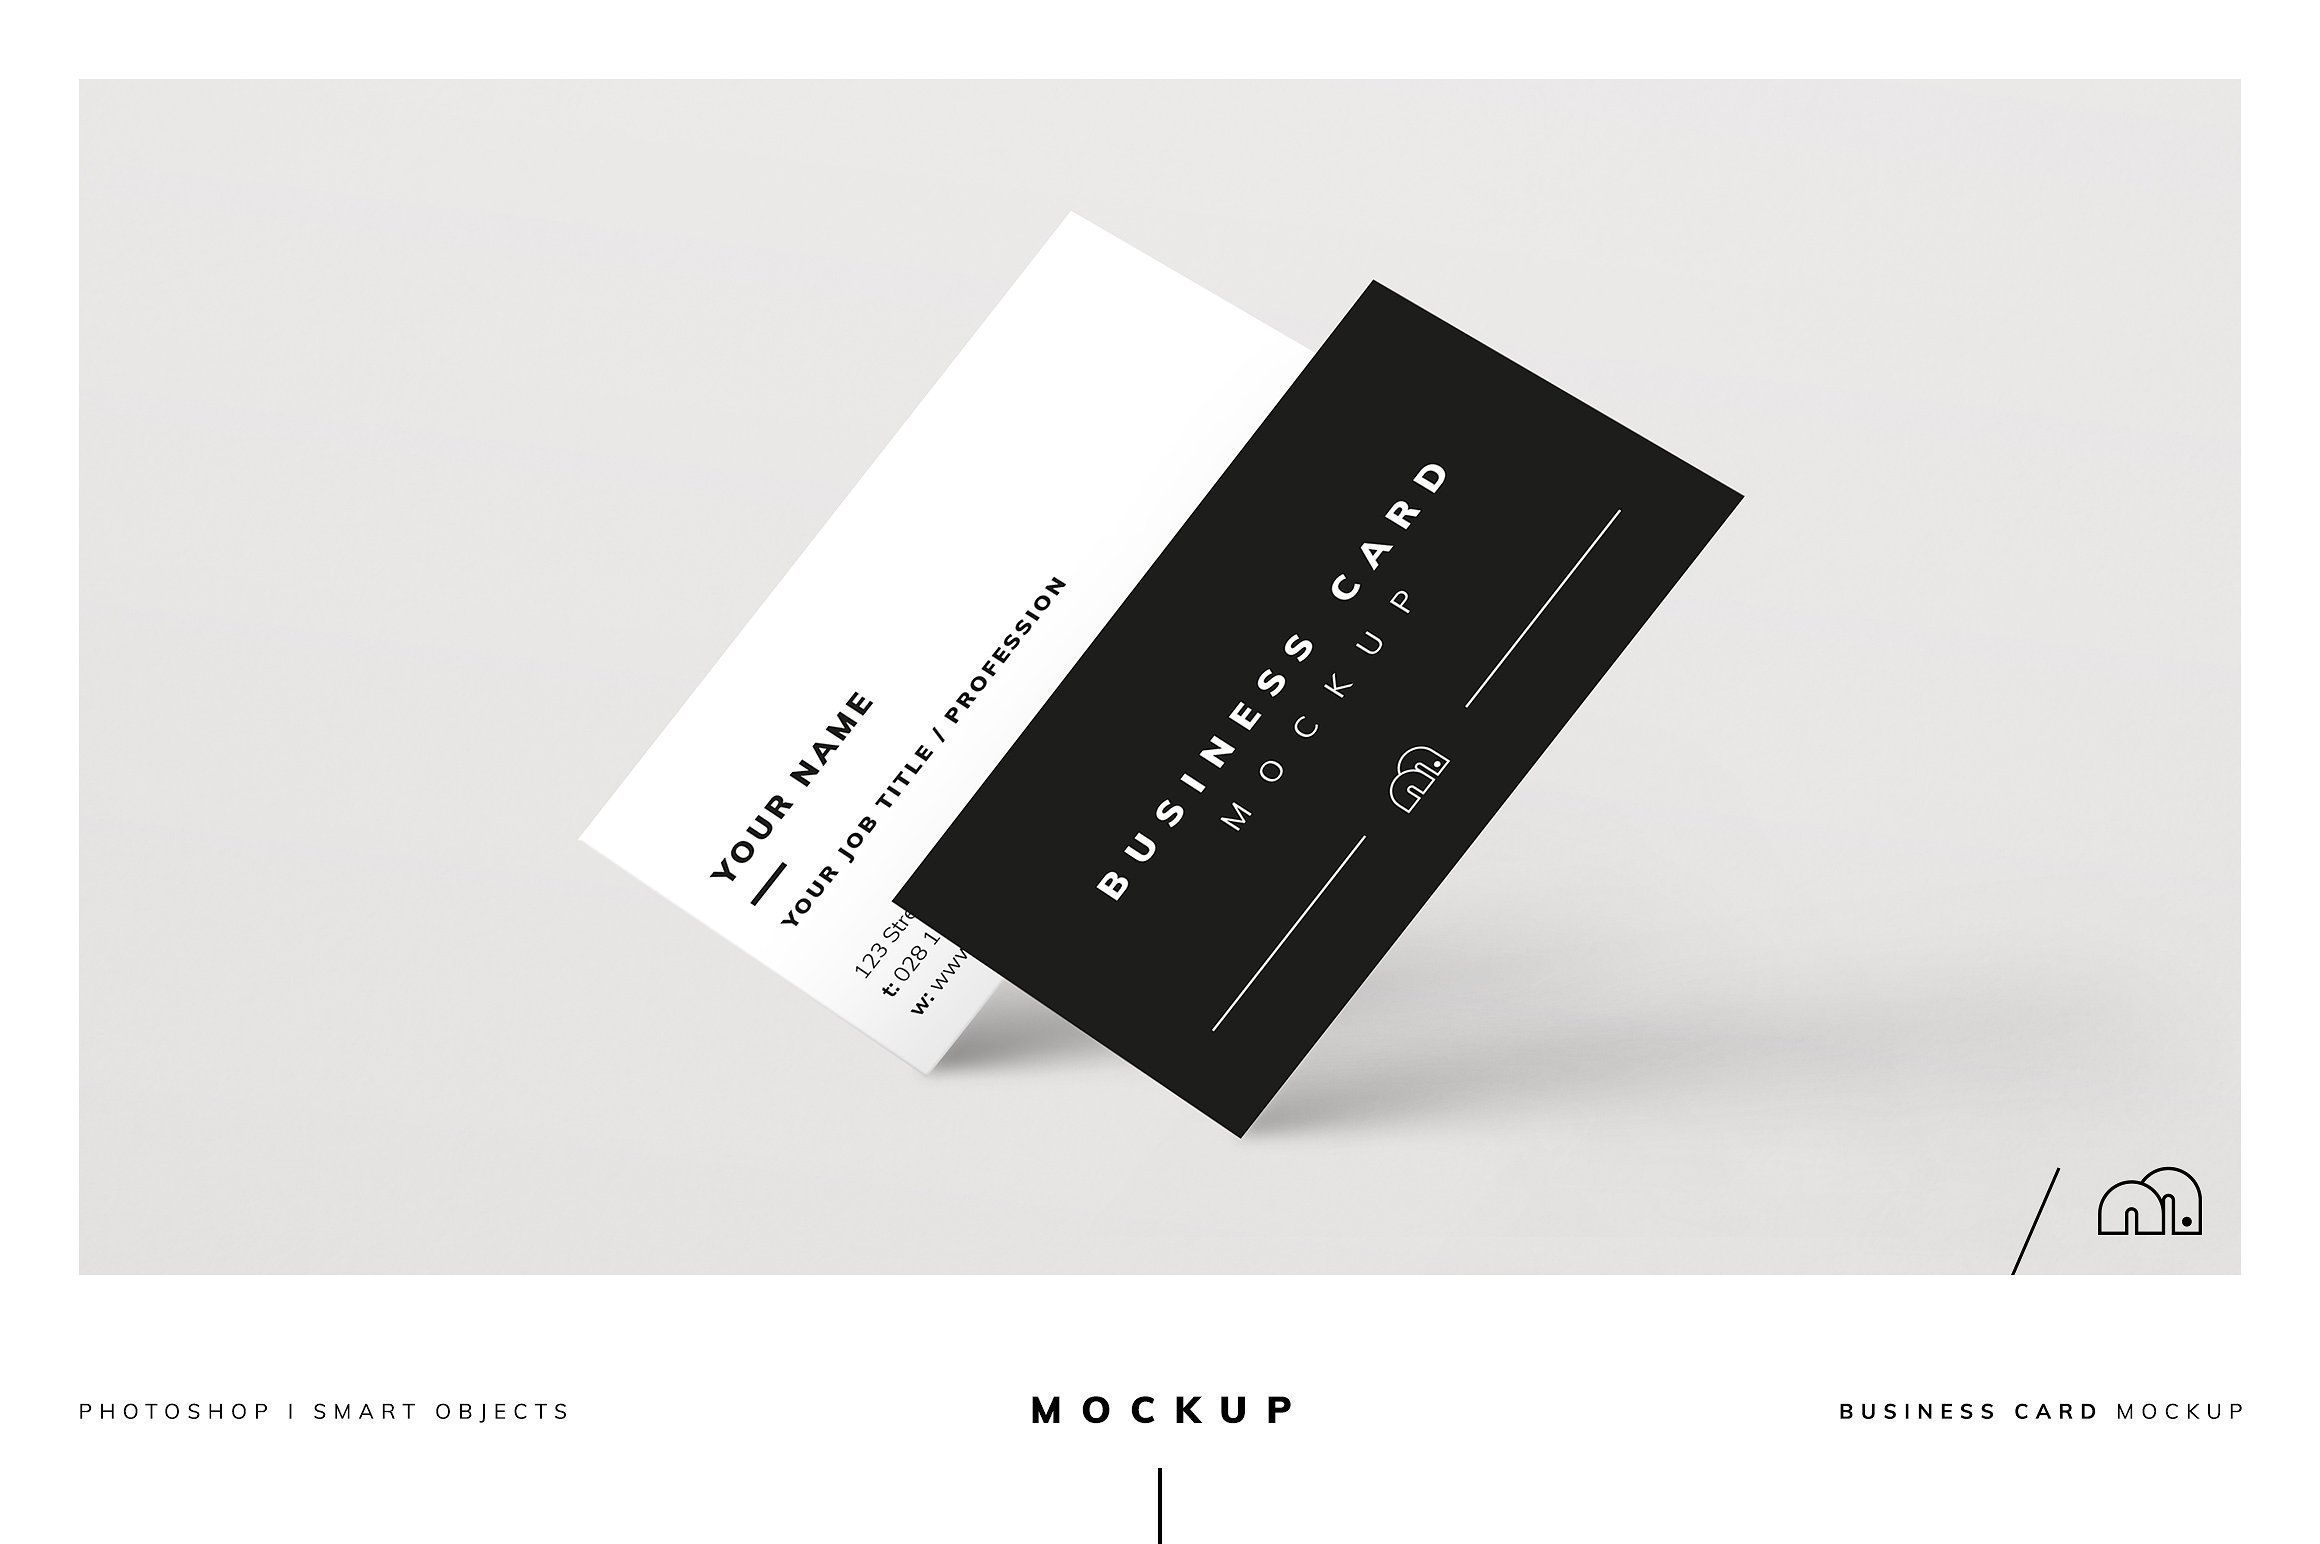 Business card mockup by bilmaw creative on creativemarket business card mockup by bilmaw creative on creativemarket professional and minimal business card presentation mockup templates these templates are packed friedricerecipe Gallery